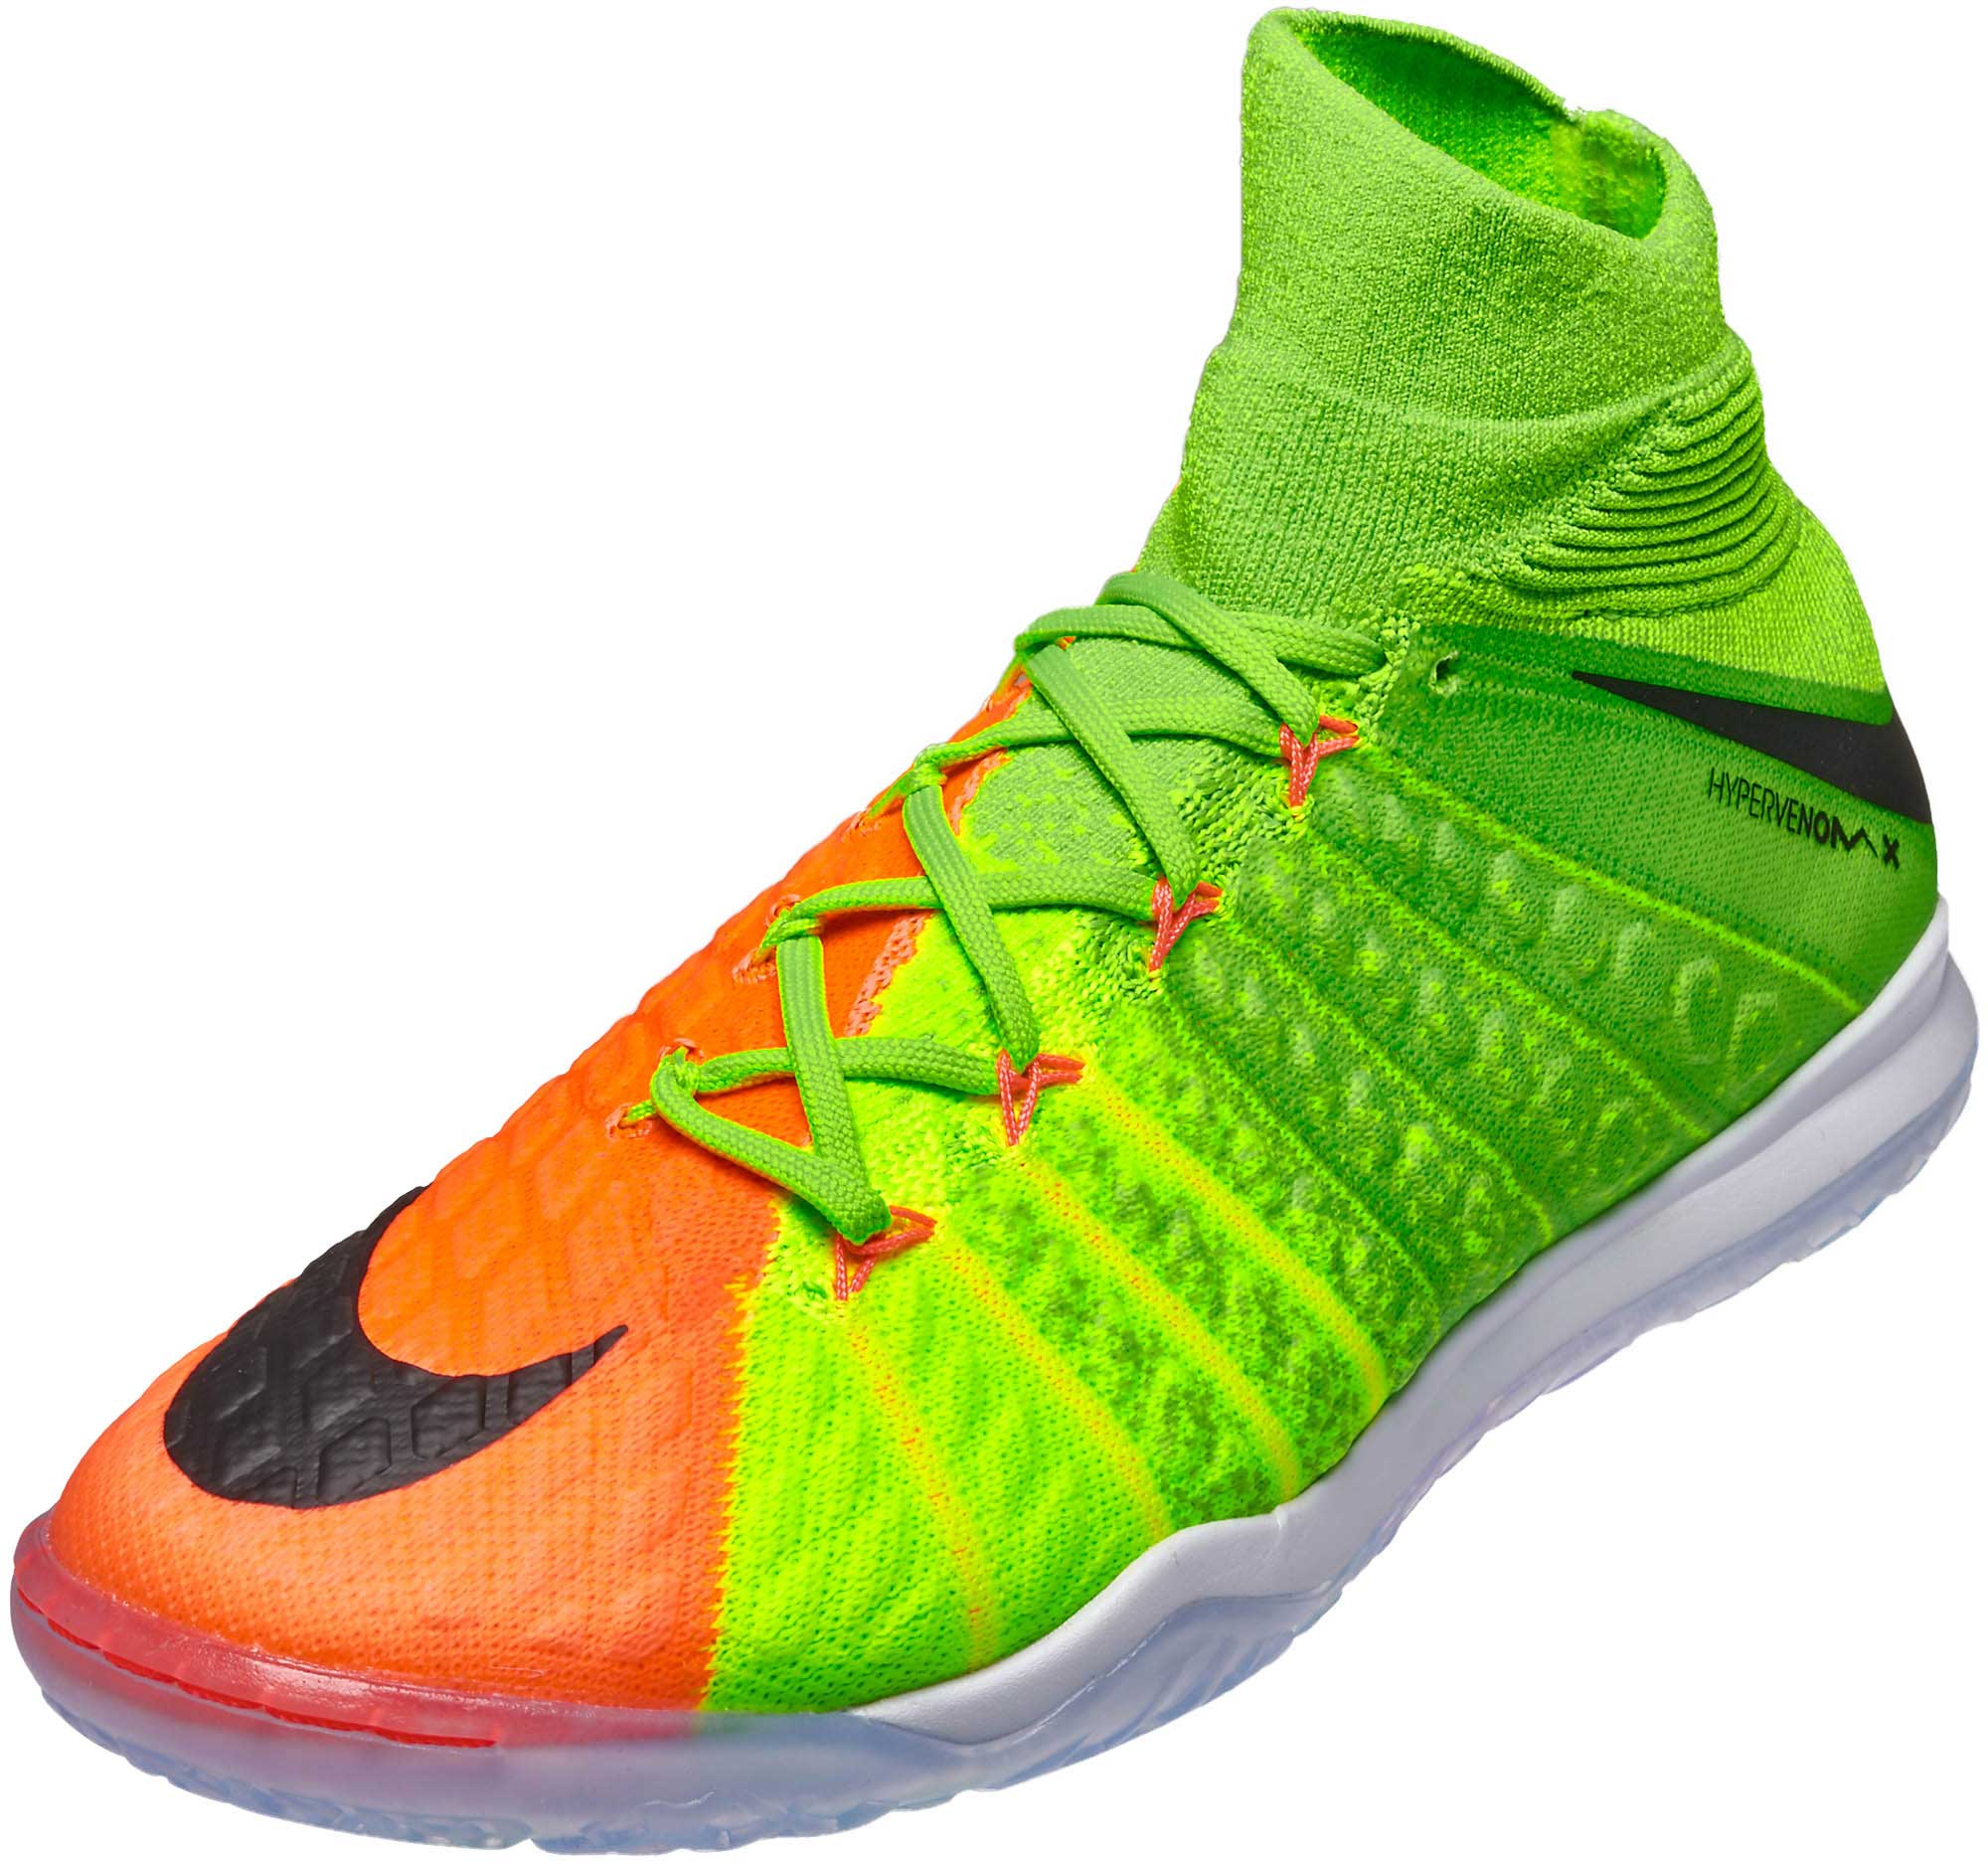 newest 7adb7 93514 nike hypervenom indoor green